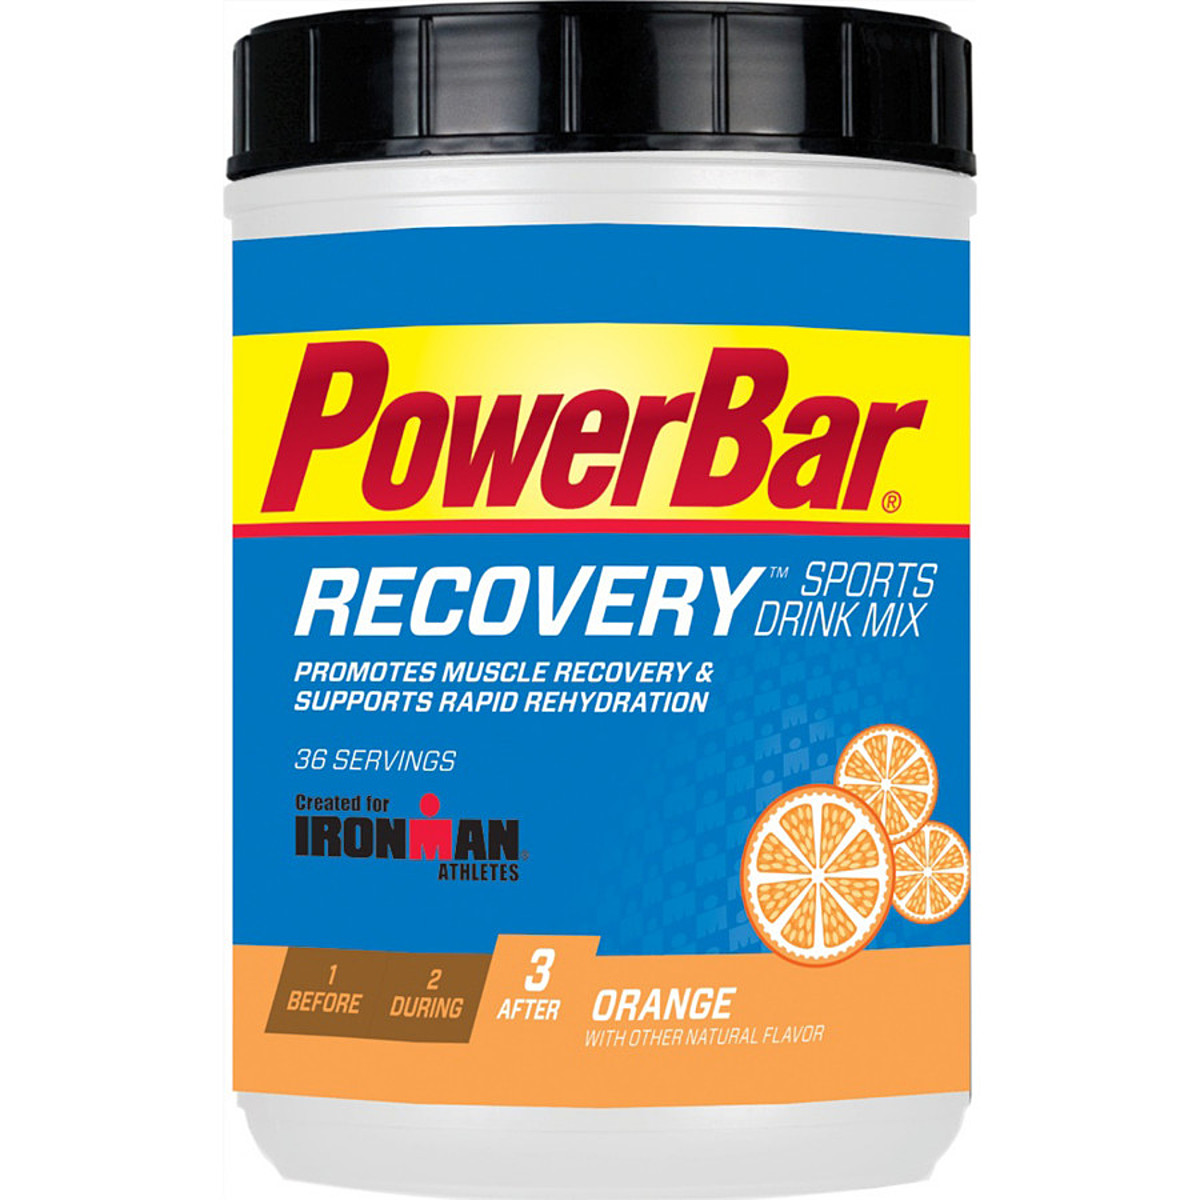 photo of a PowerBar drink